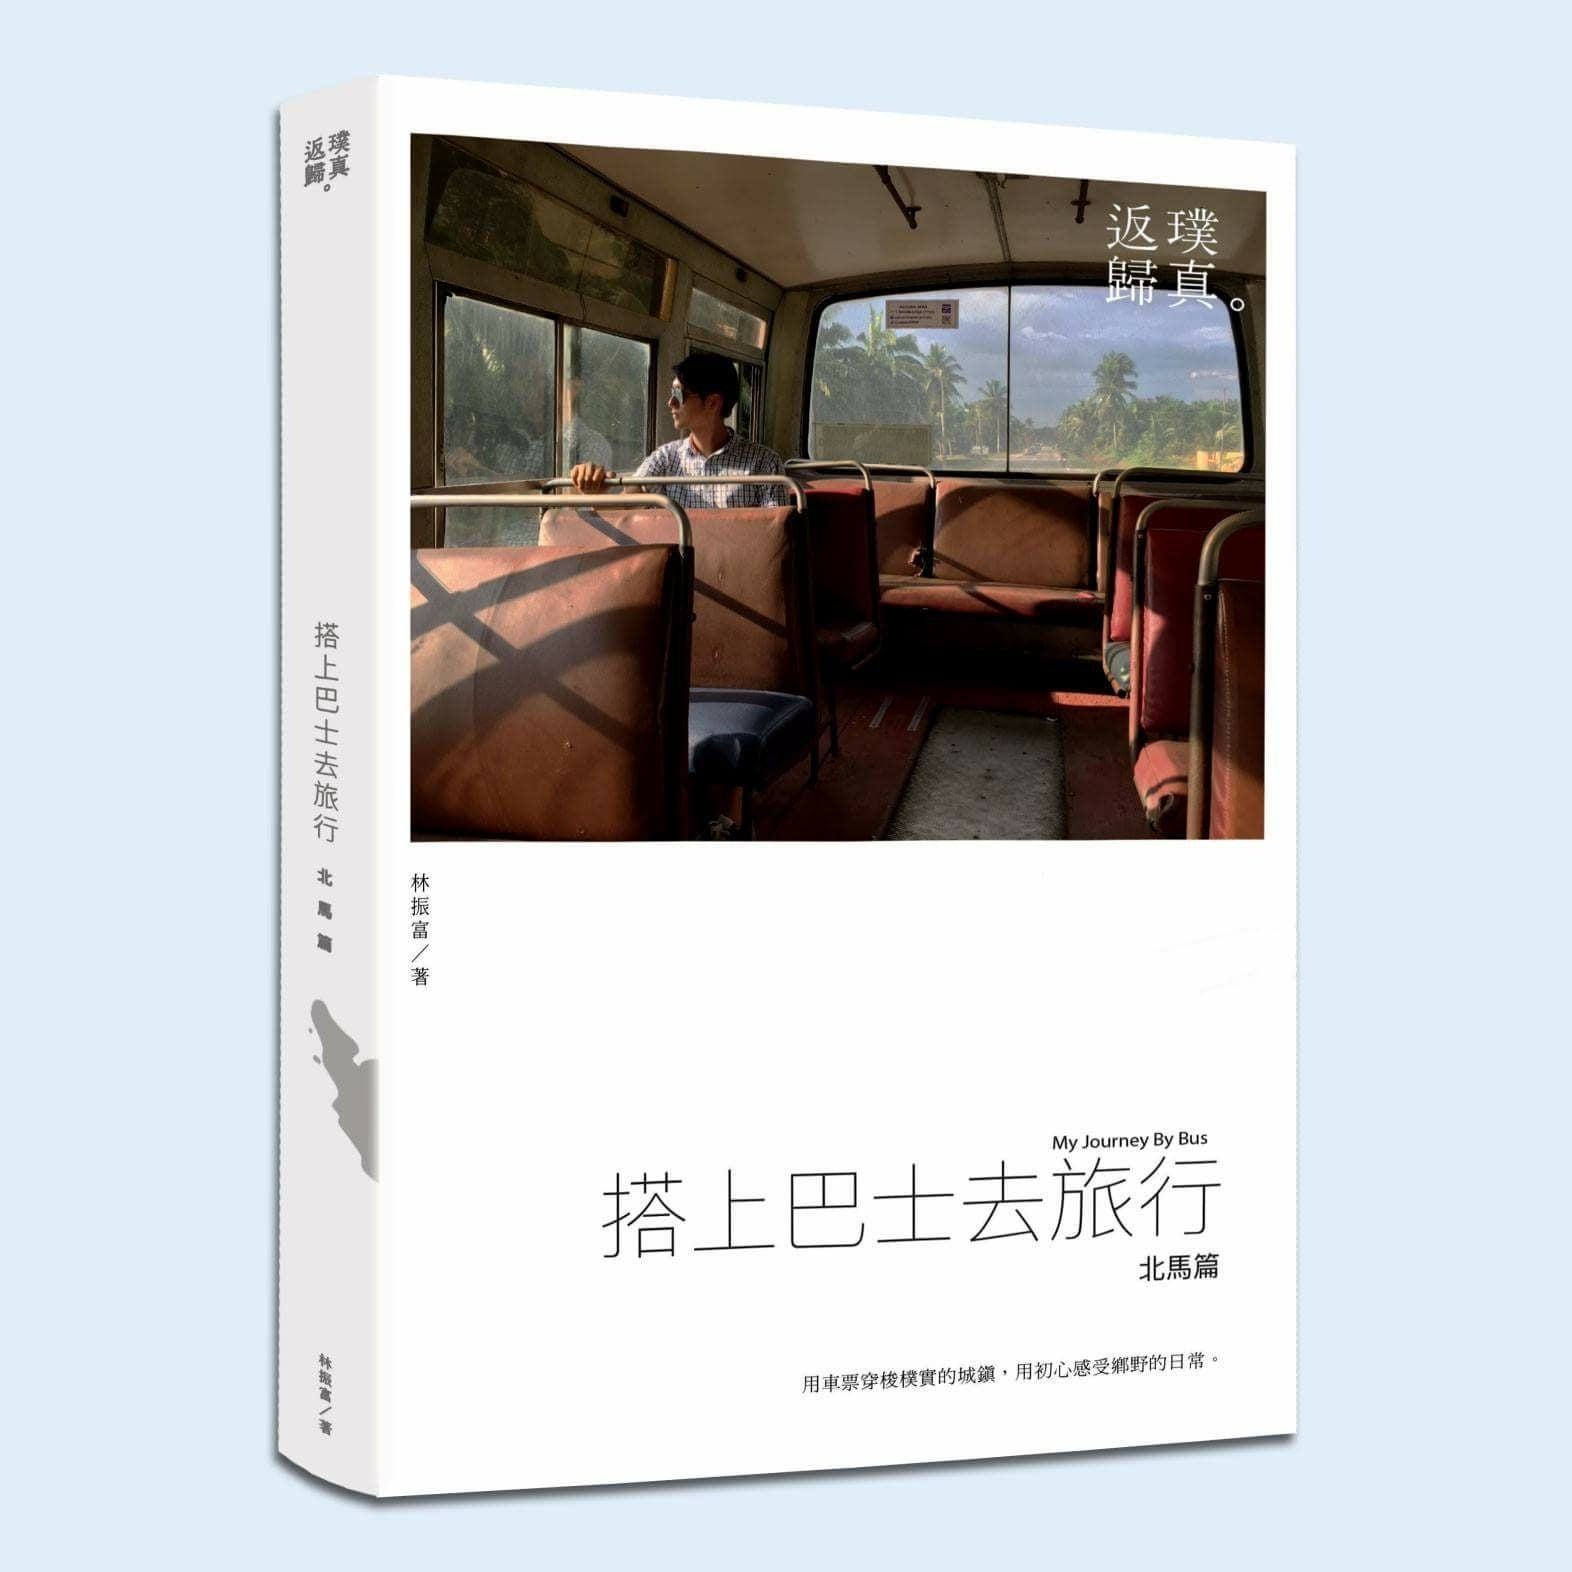 搭上巴士去旅行 My Journey By Bus